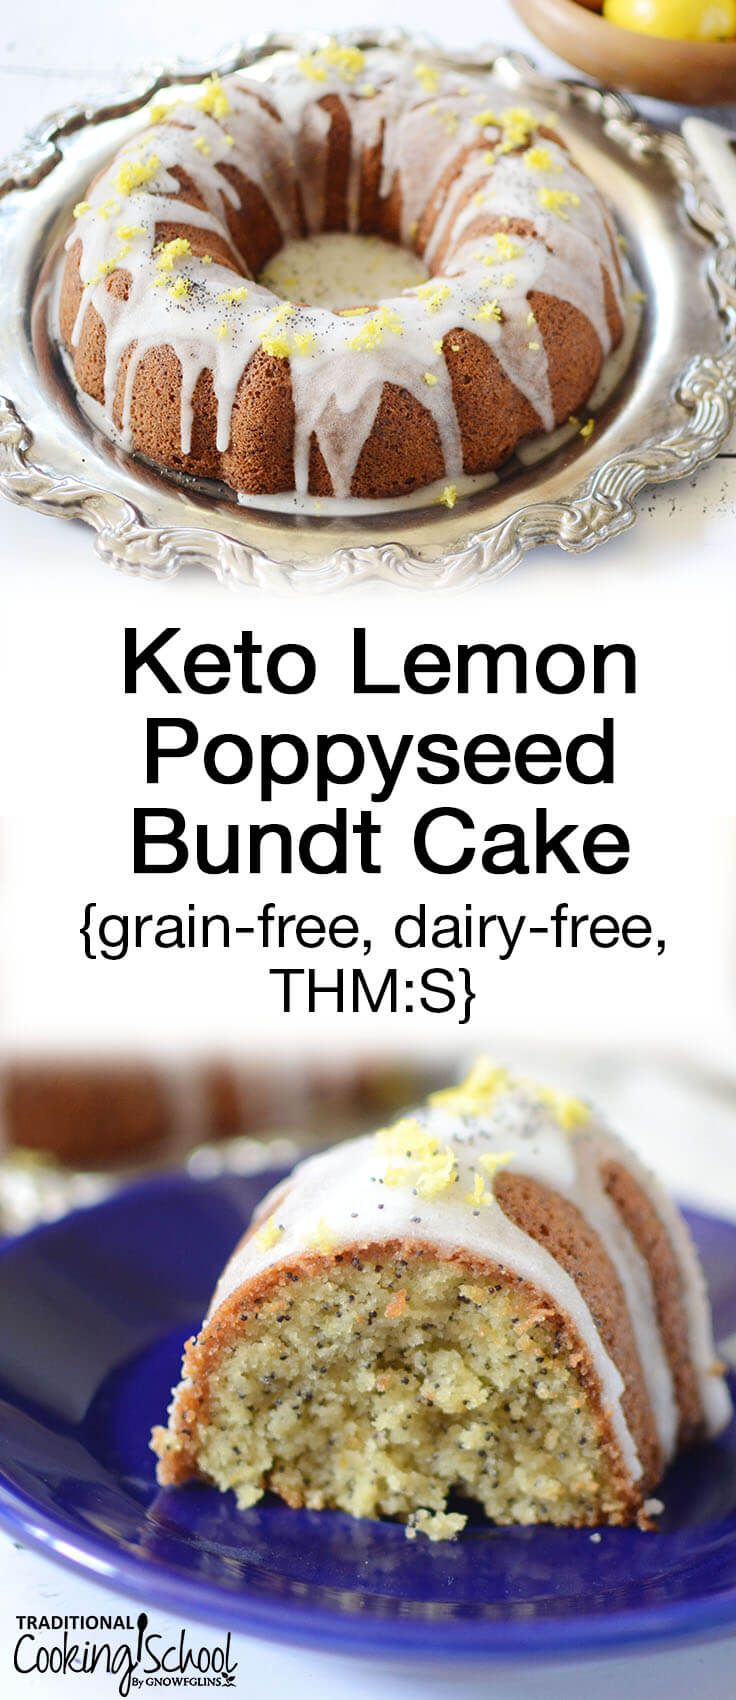 Lemon poppyseed anything is my favorite... even over chocolate. Yet, if you're on a healing diet or trying to lose weight, the usual lemon poppyseed desserts are off-limits. Not this one! Dairy-free, grain-free, and sugar-free, this Keto Lemon Poppyseed Bundt Cake is perfect for low-carb lifestyles or Trim Healthy Mamas looking for S desserts! #tradcookschool #ketodessert #ketolemonpoppyseedcake #trimhealthymama #sweetwithoutsugar